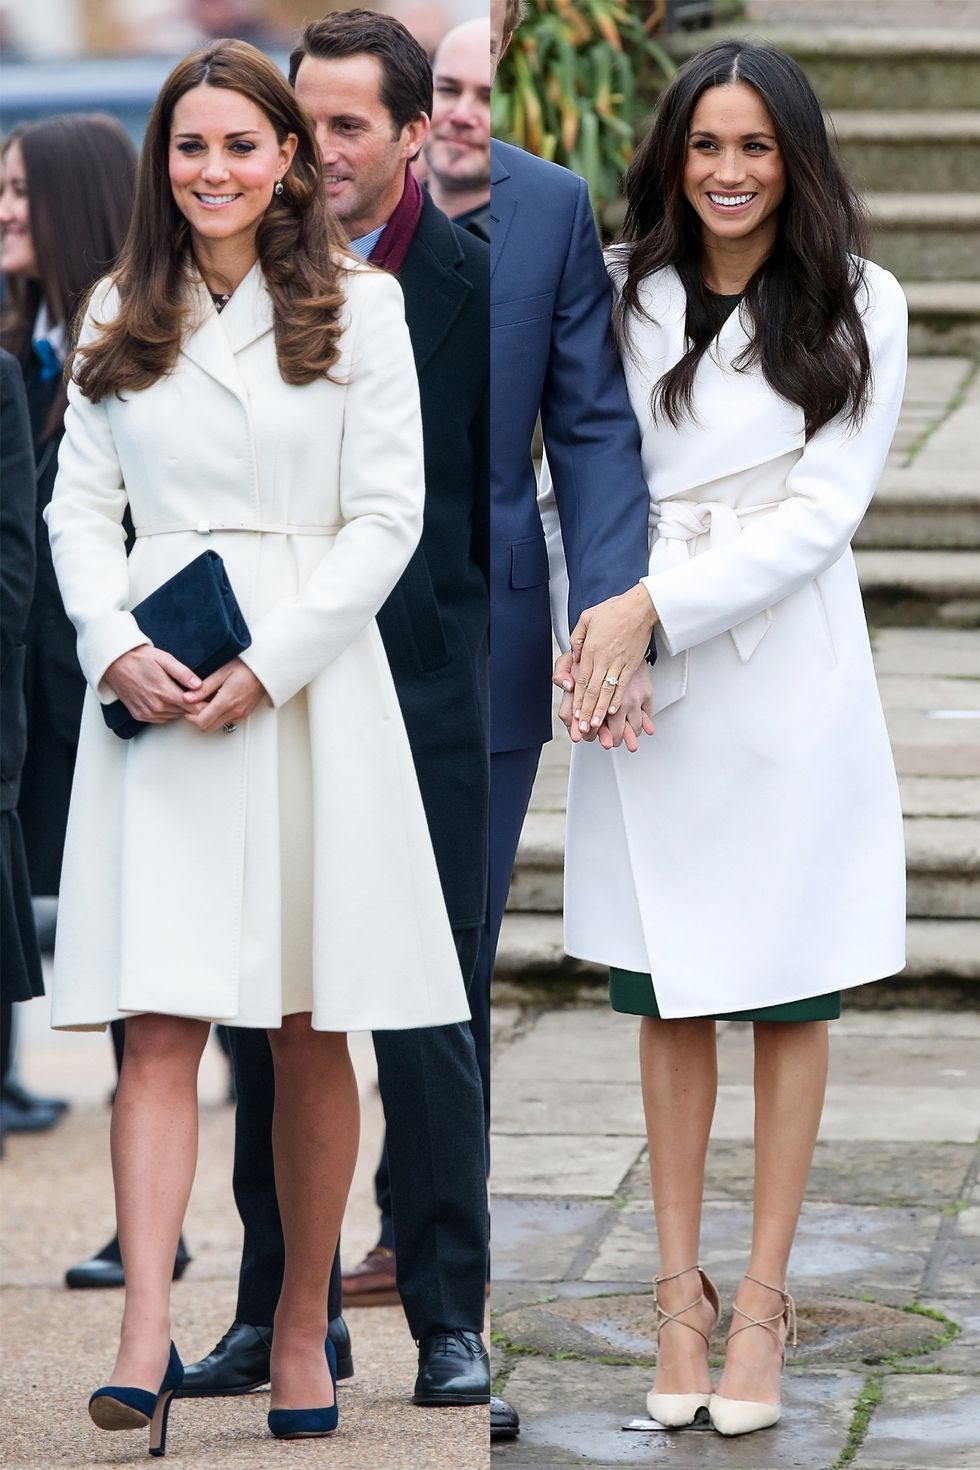 kate middleton and meghan markle s matching outfits kate middleton and meghan markle photos meghan markle style kate middleton style kate and meghan kate middleton and meghan markle photos